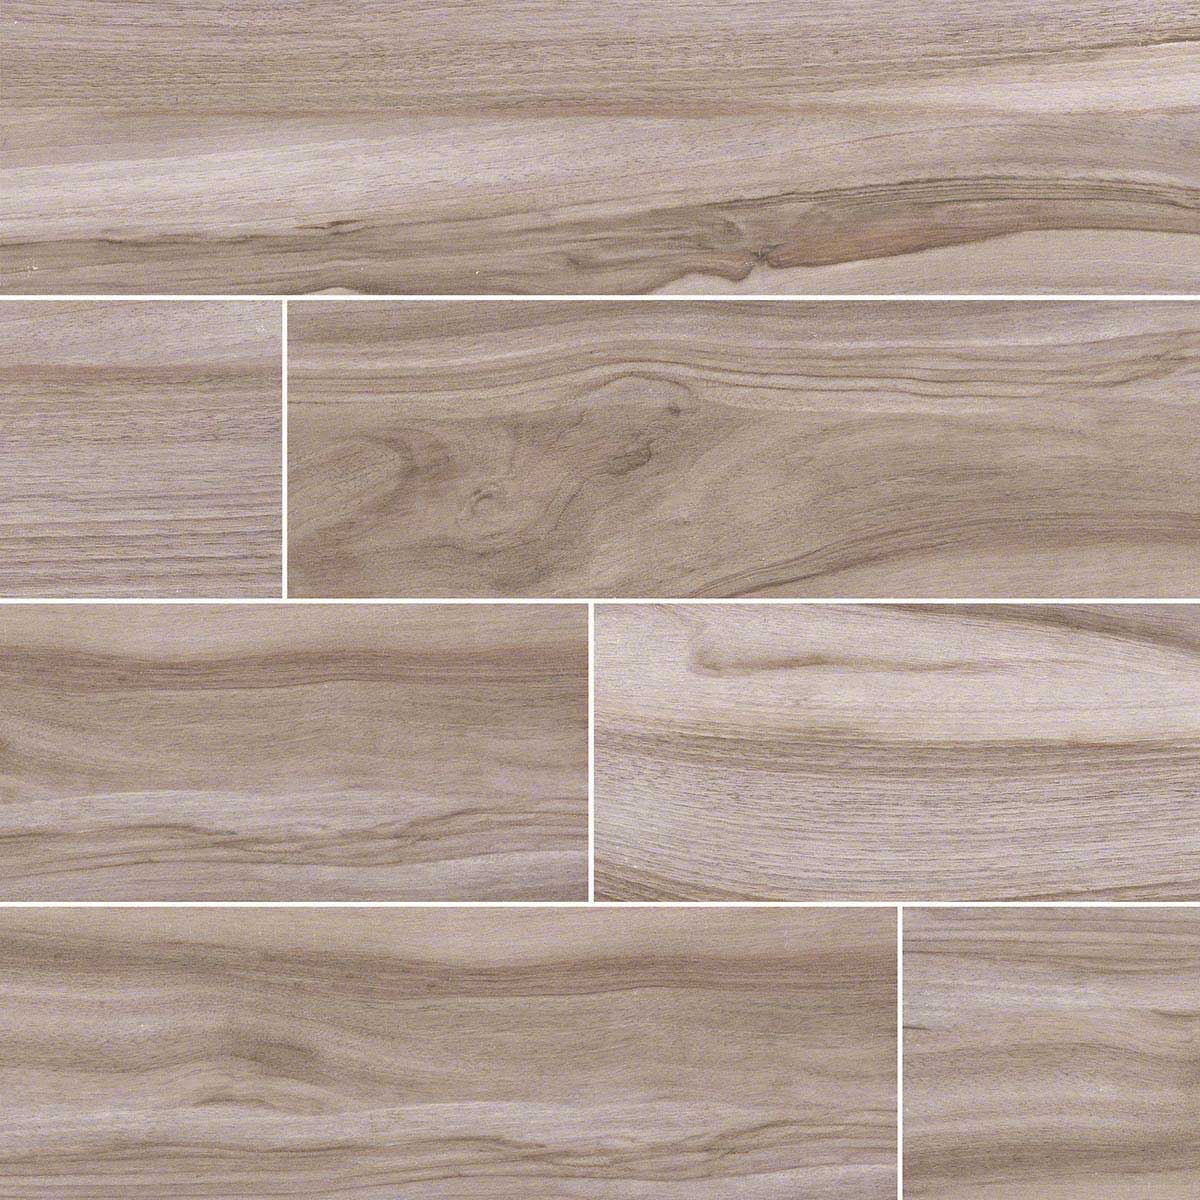 wood tile flooring. Wood Look Tiles Currently Available: Tile Flooring